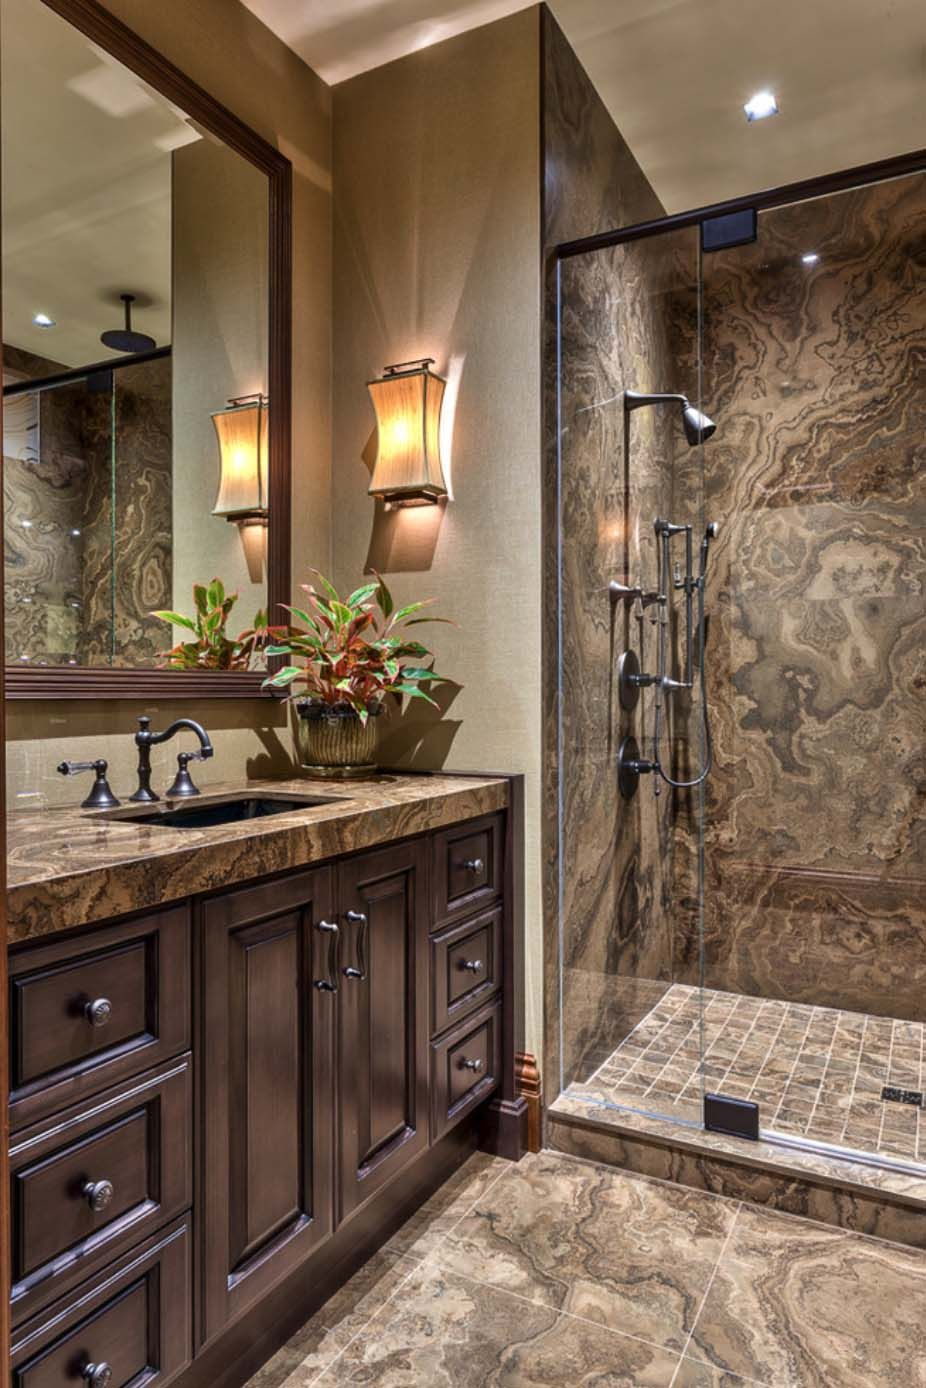 Attractive In The Mountains Of North Carolina Is This Eye Catching Mountain Resort  Bathroom. Features Include Custom Designed Cabinetry In A A Grey Wood Stain  With ...